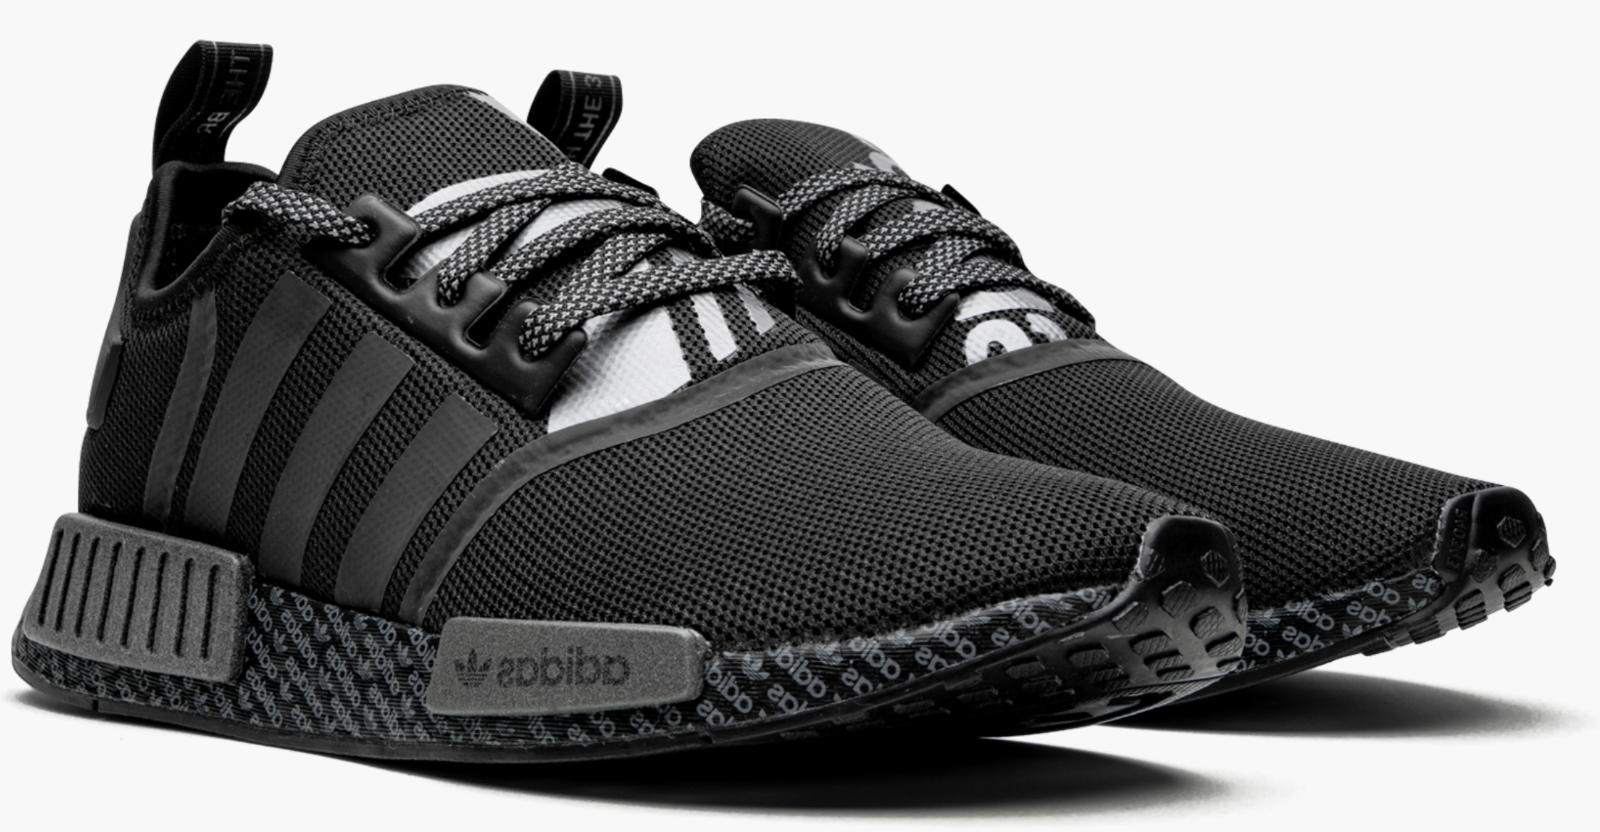 New ADIDAS NMD R1 casual shoes black sizes